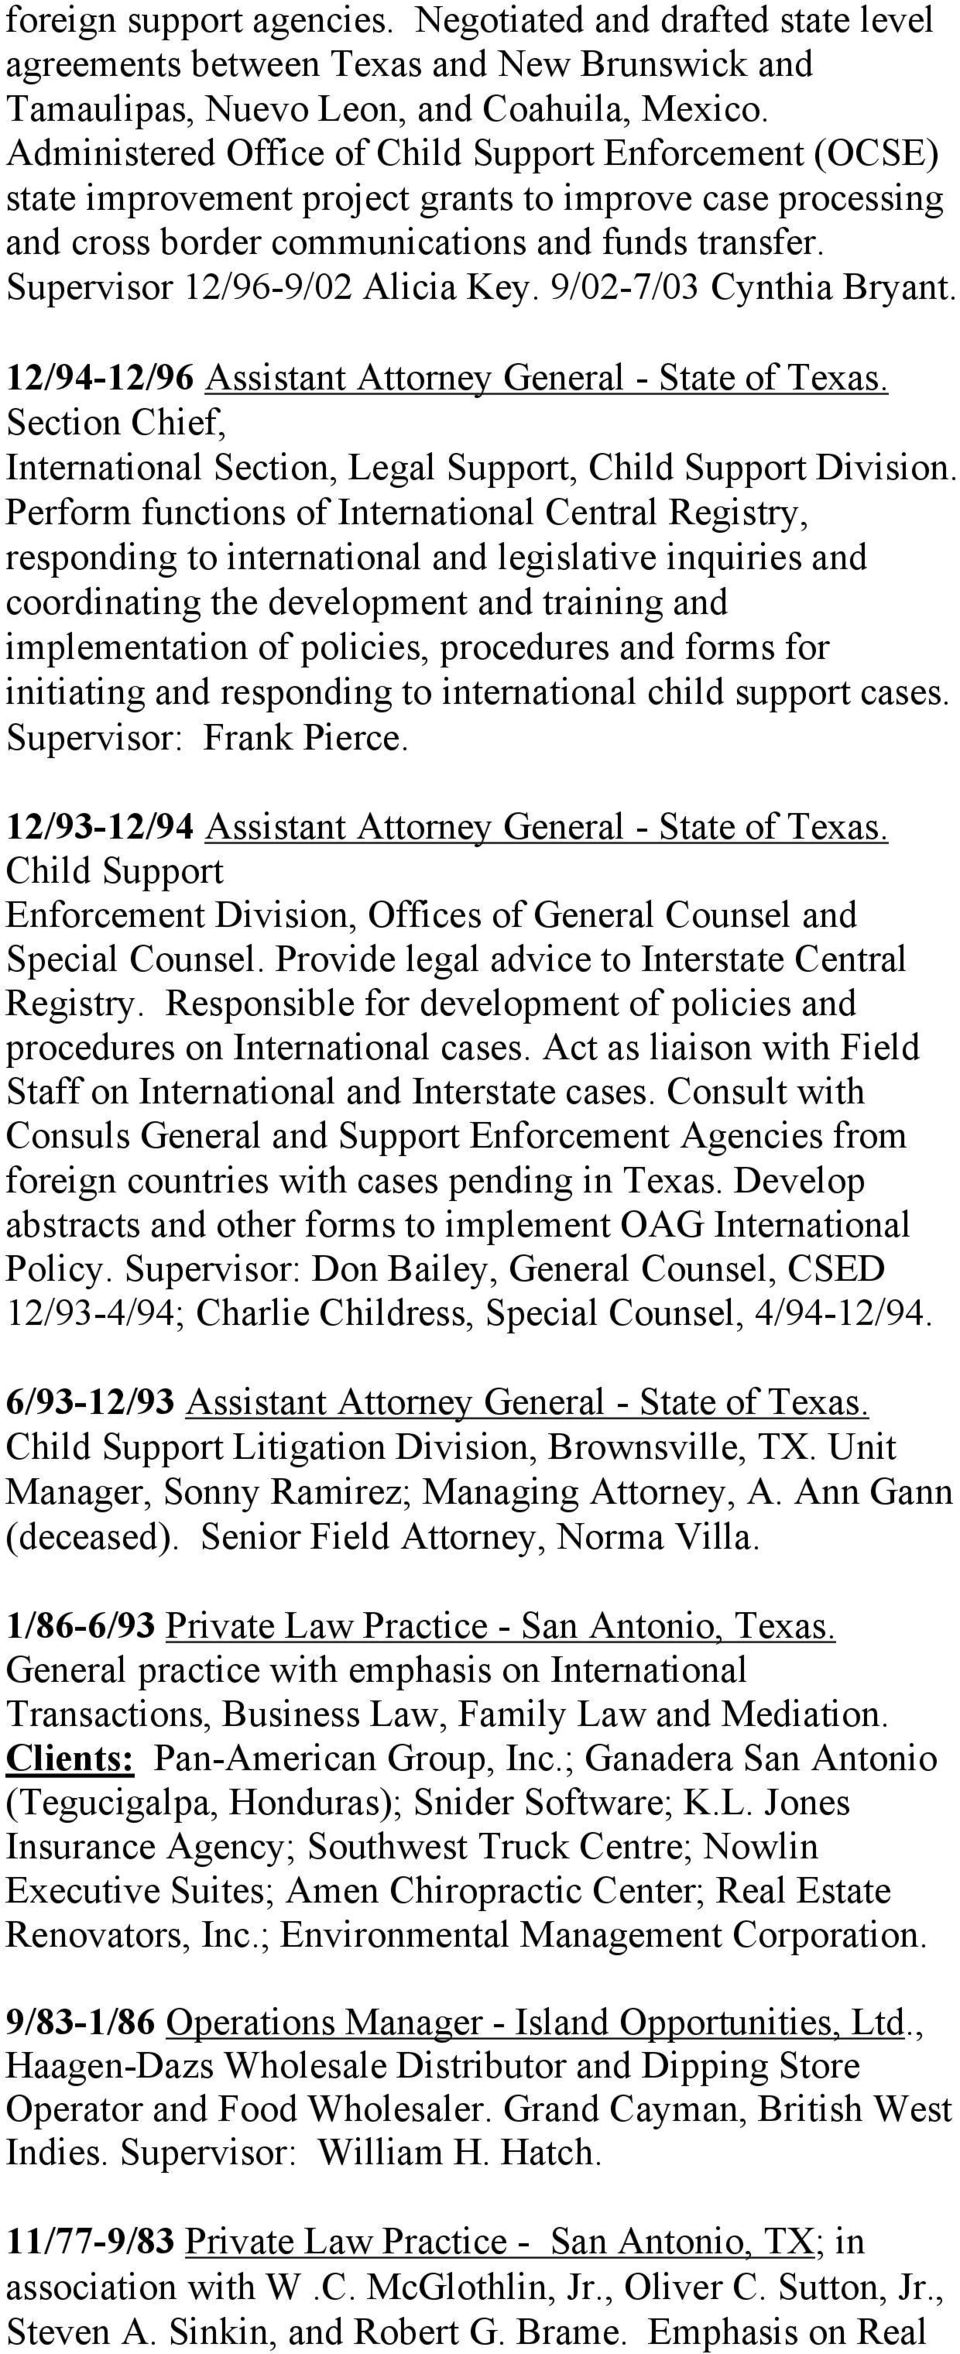 Supervisor 12/96-9/02 Alicia Key. 9/02-7/03 Cynthia Bryant. 12/94-12/96 Assistant Attorney General - State of Texas. Section Chief, International Section, Legal Support, Child Support Division.